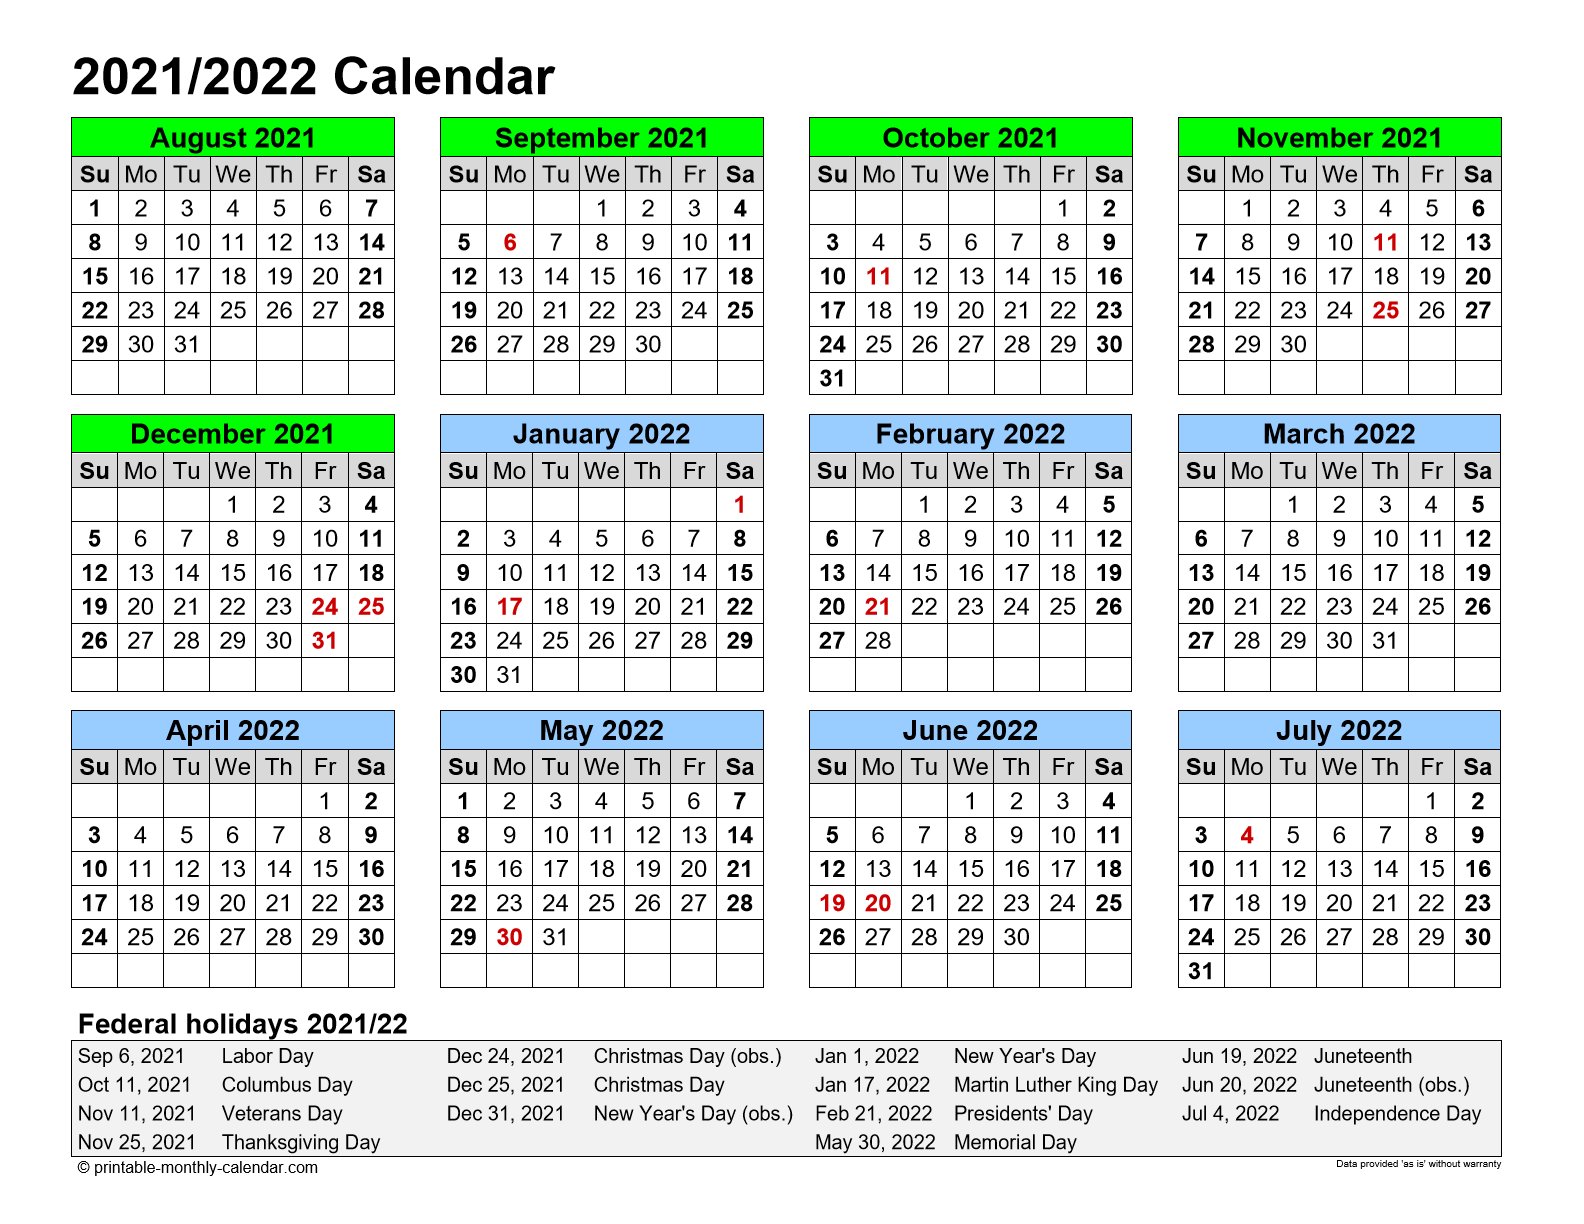 Printable 12 Month Calendar For August 2021 To July 2022